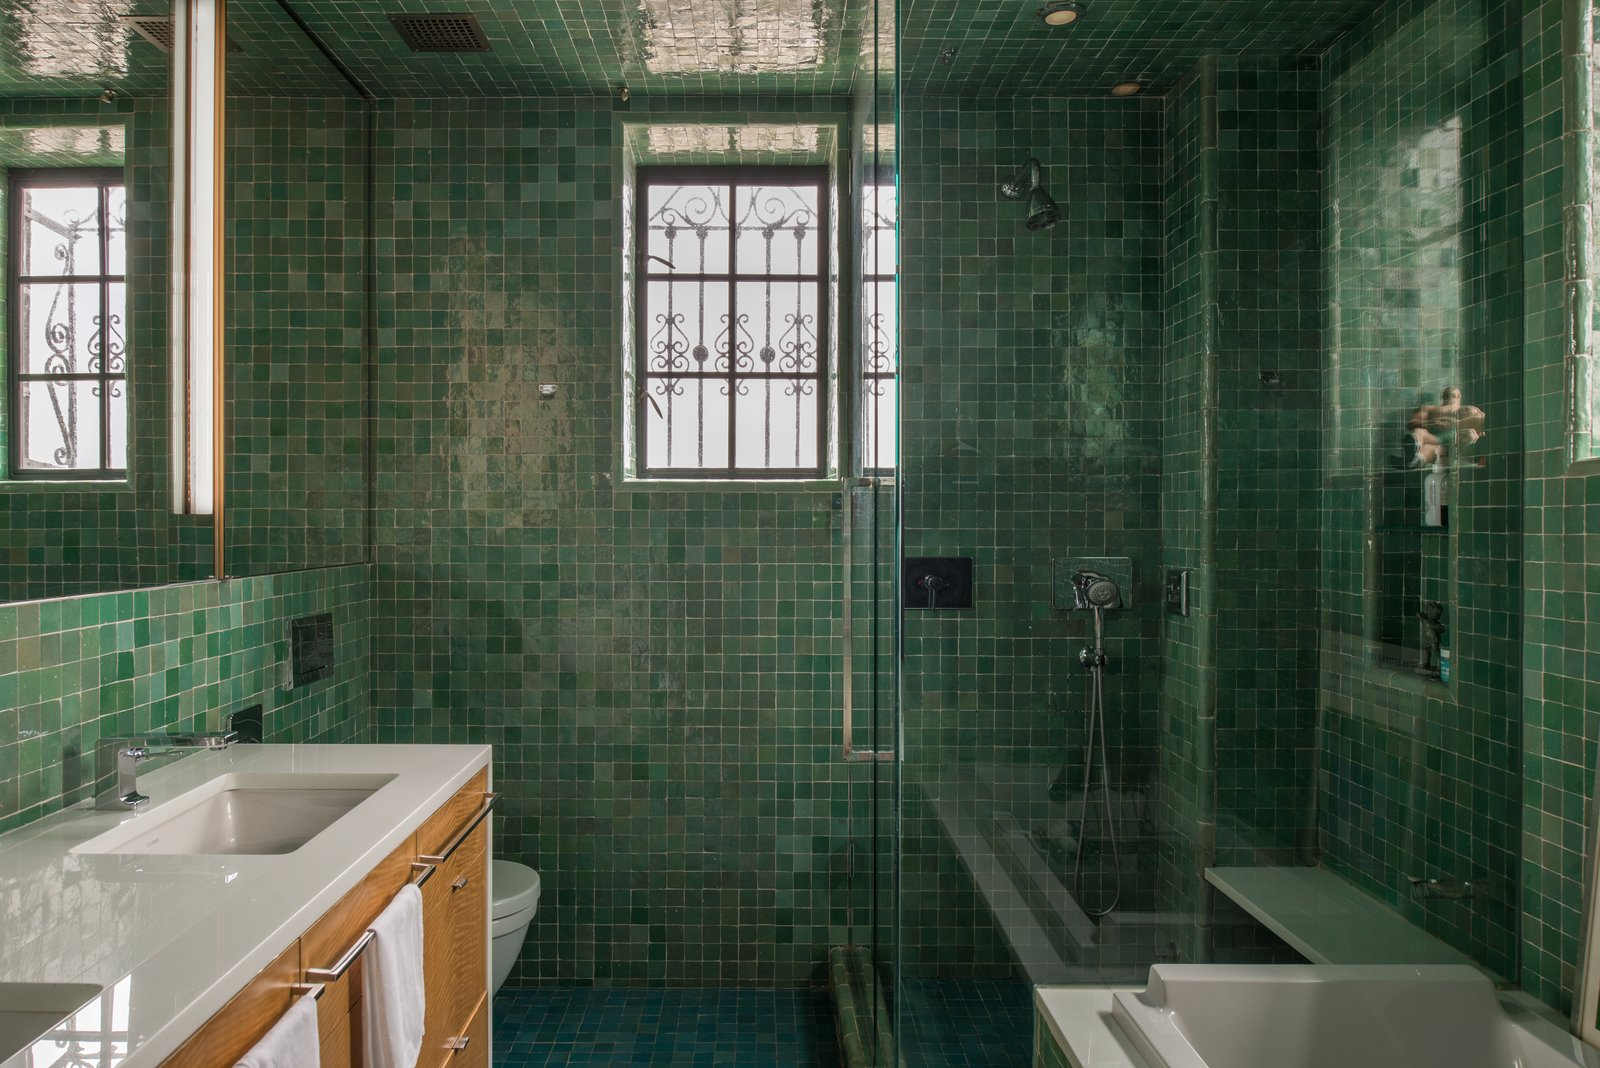 Bath Room, Drop In Sink, Engineered Quartz Counter, Drop In Tub, Enclosed Shower, Porcelain Tile Floor, and Porcelain Tile Wall  W72nd Penthouse by MUTUUS STUDIO